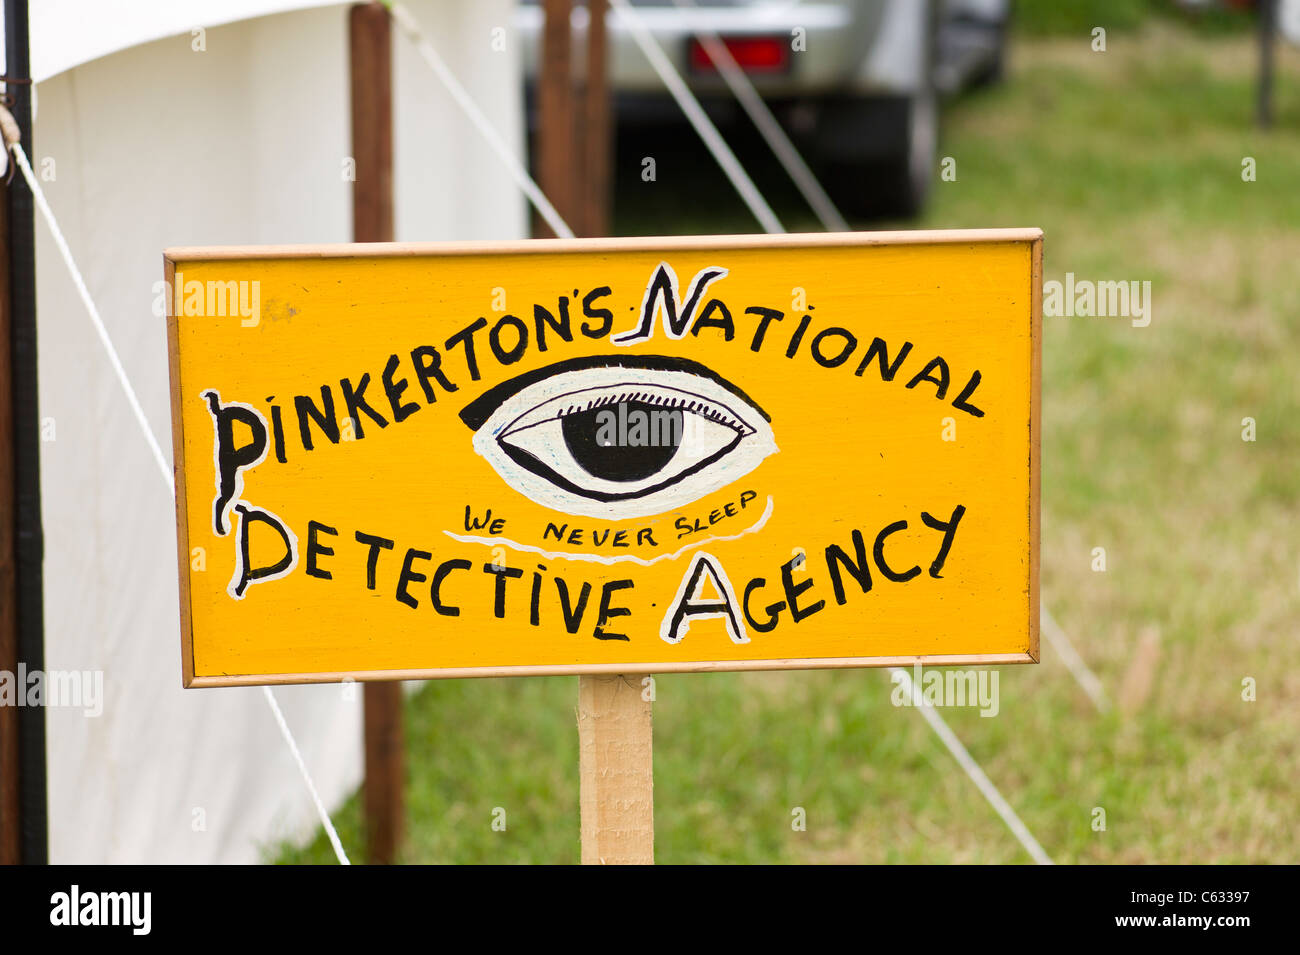 Pinkerton's National Detective Agency sign at English country event - Stock Image